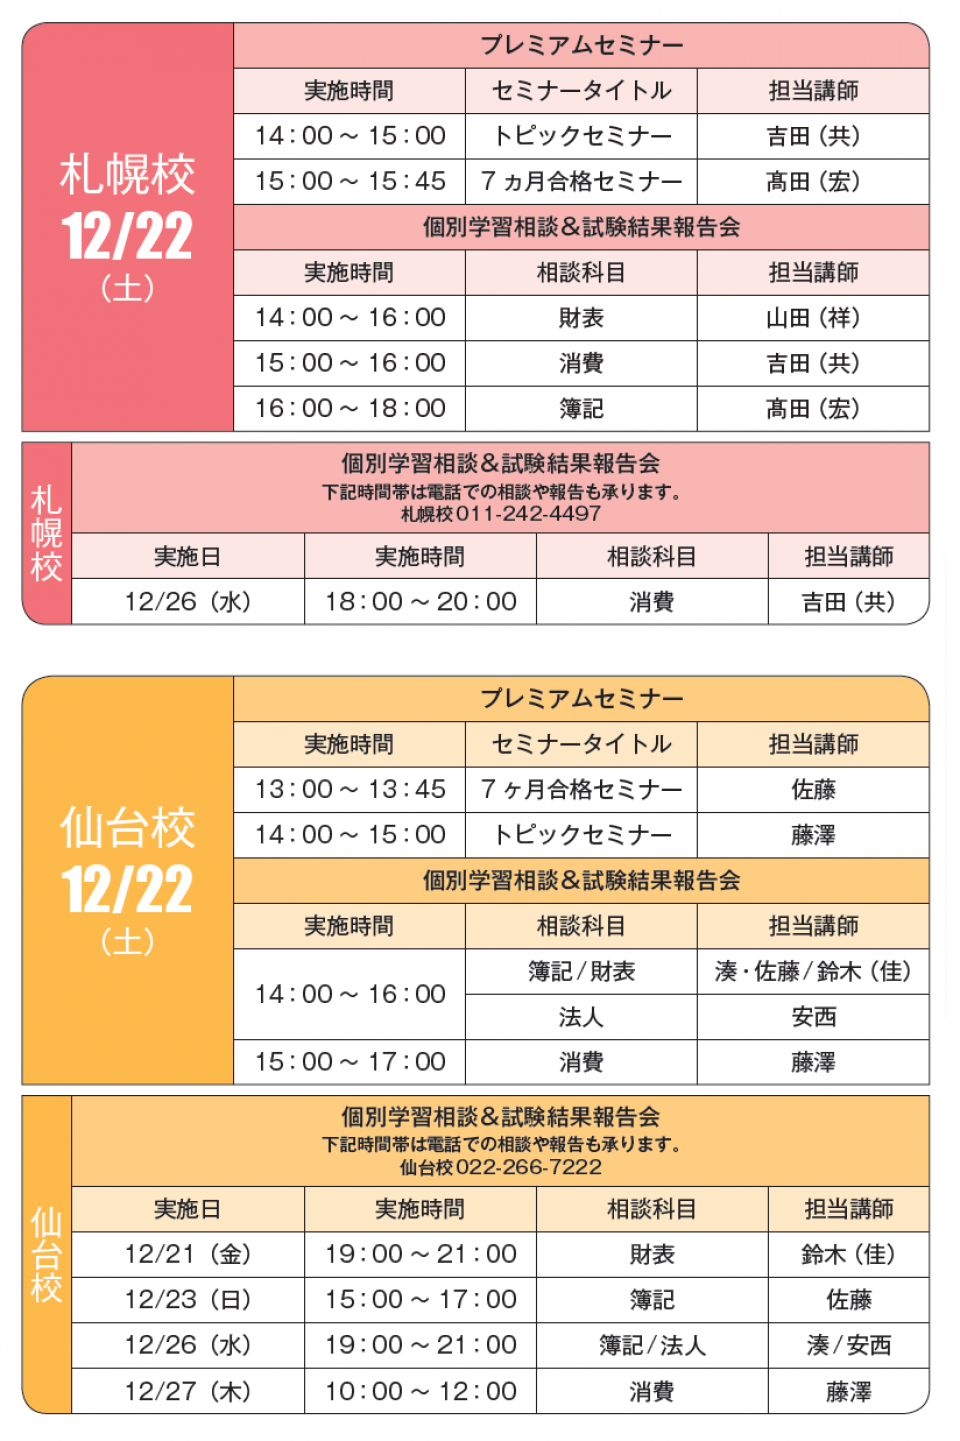 201812_zeiri_openfes_06.png